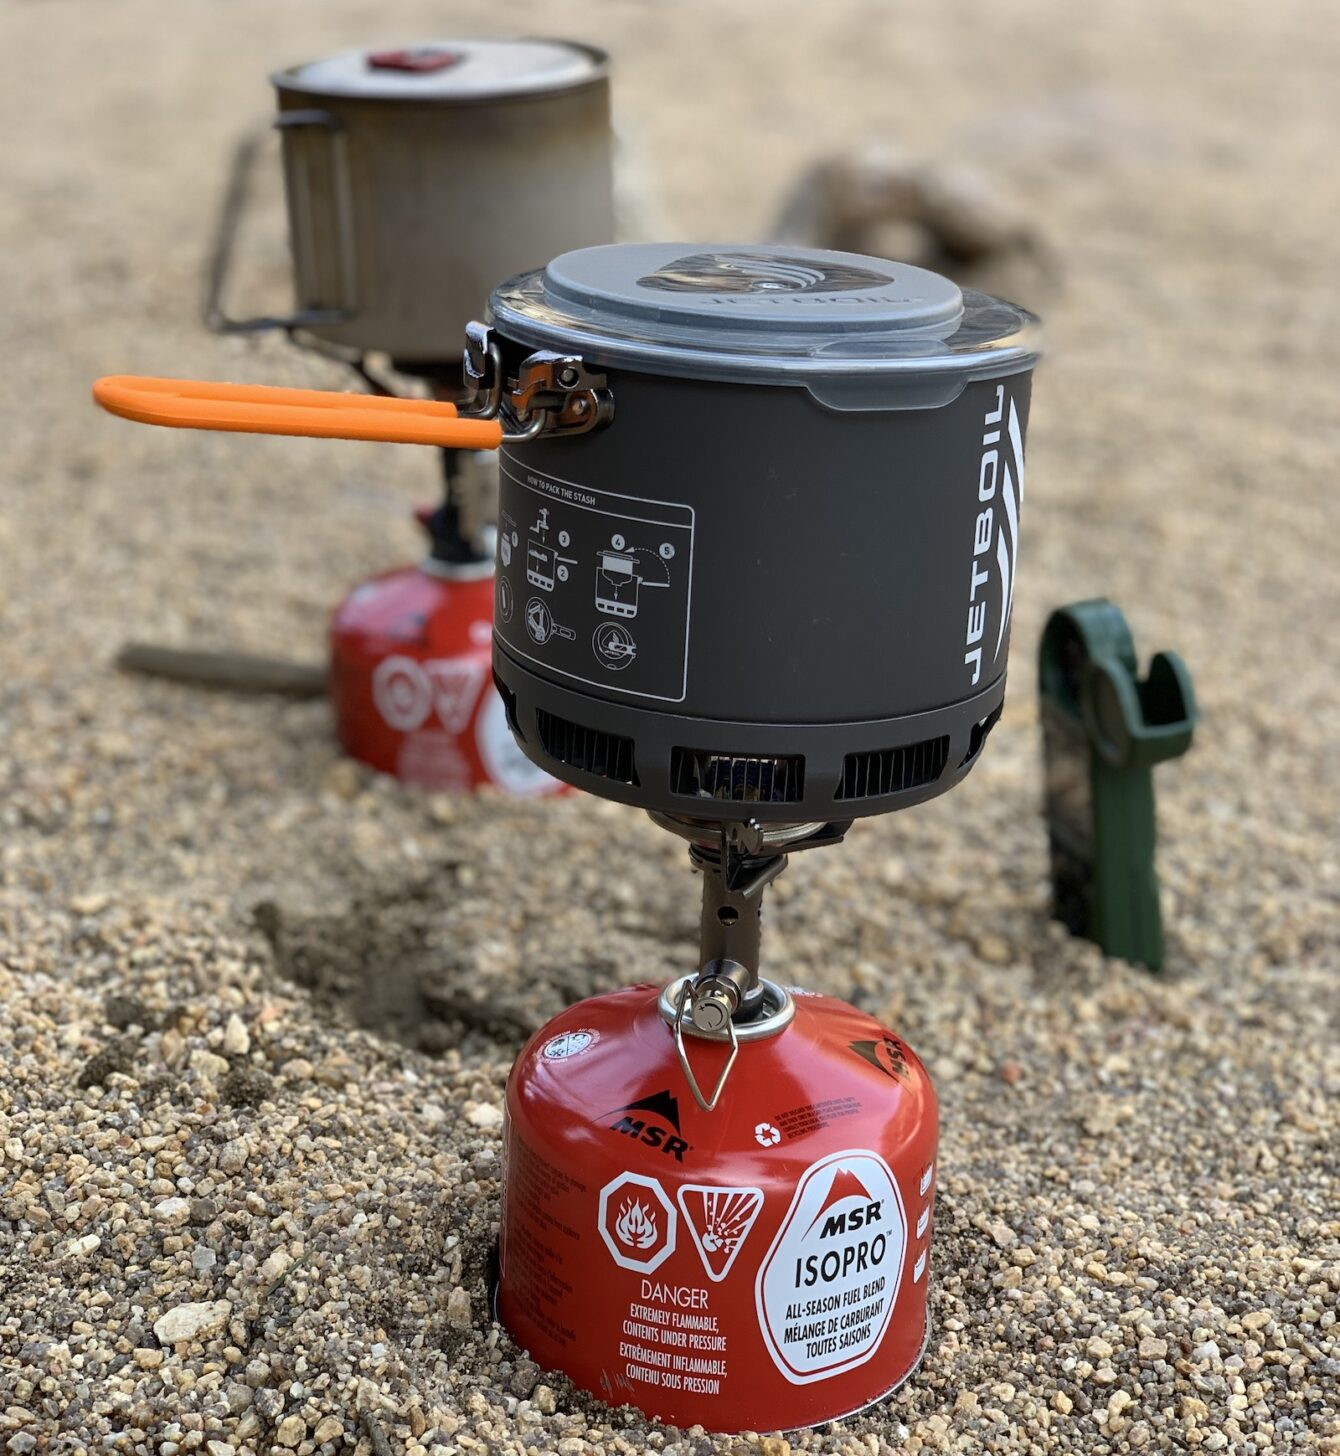 two isobutane canister stove cooking systems side by wide with a wind meter, for a comparison test